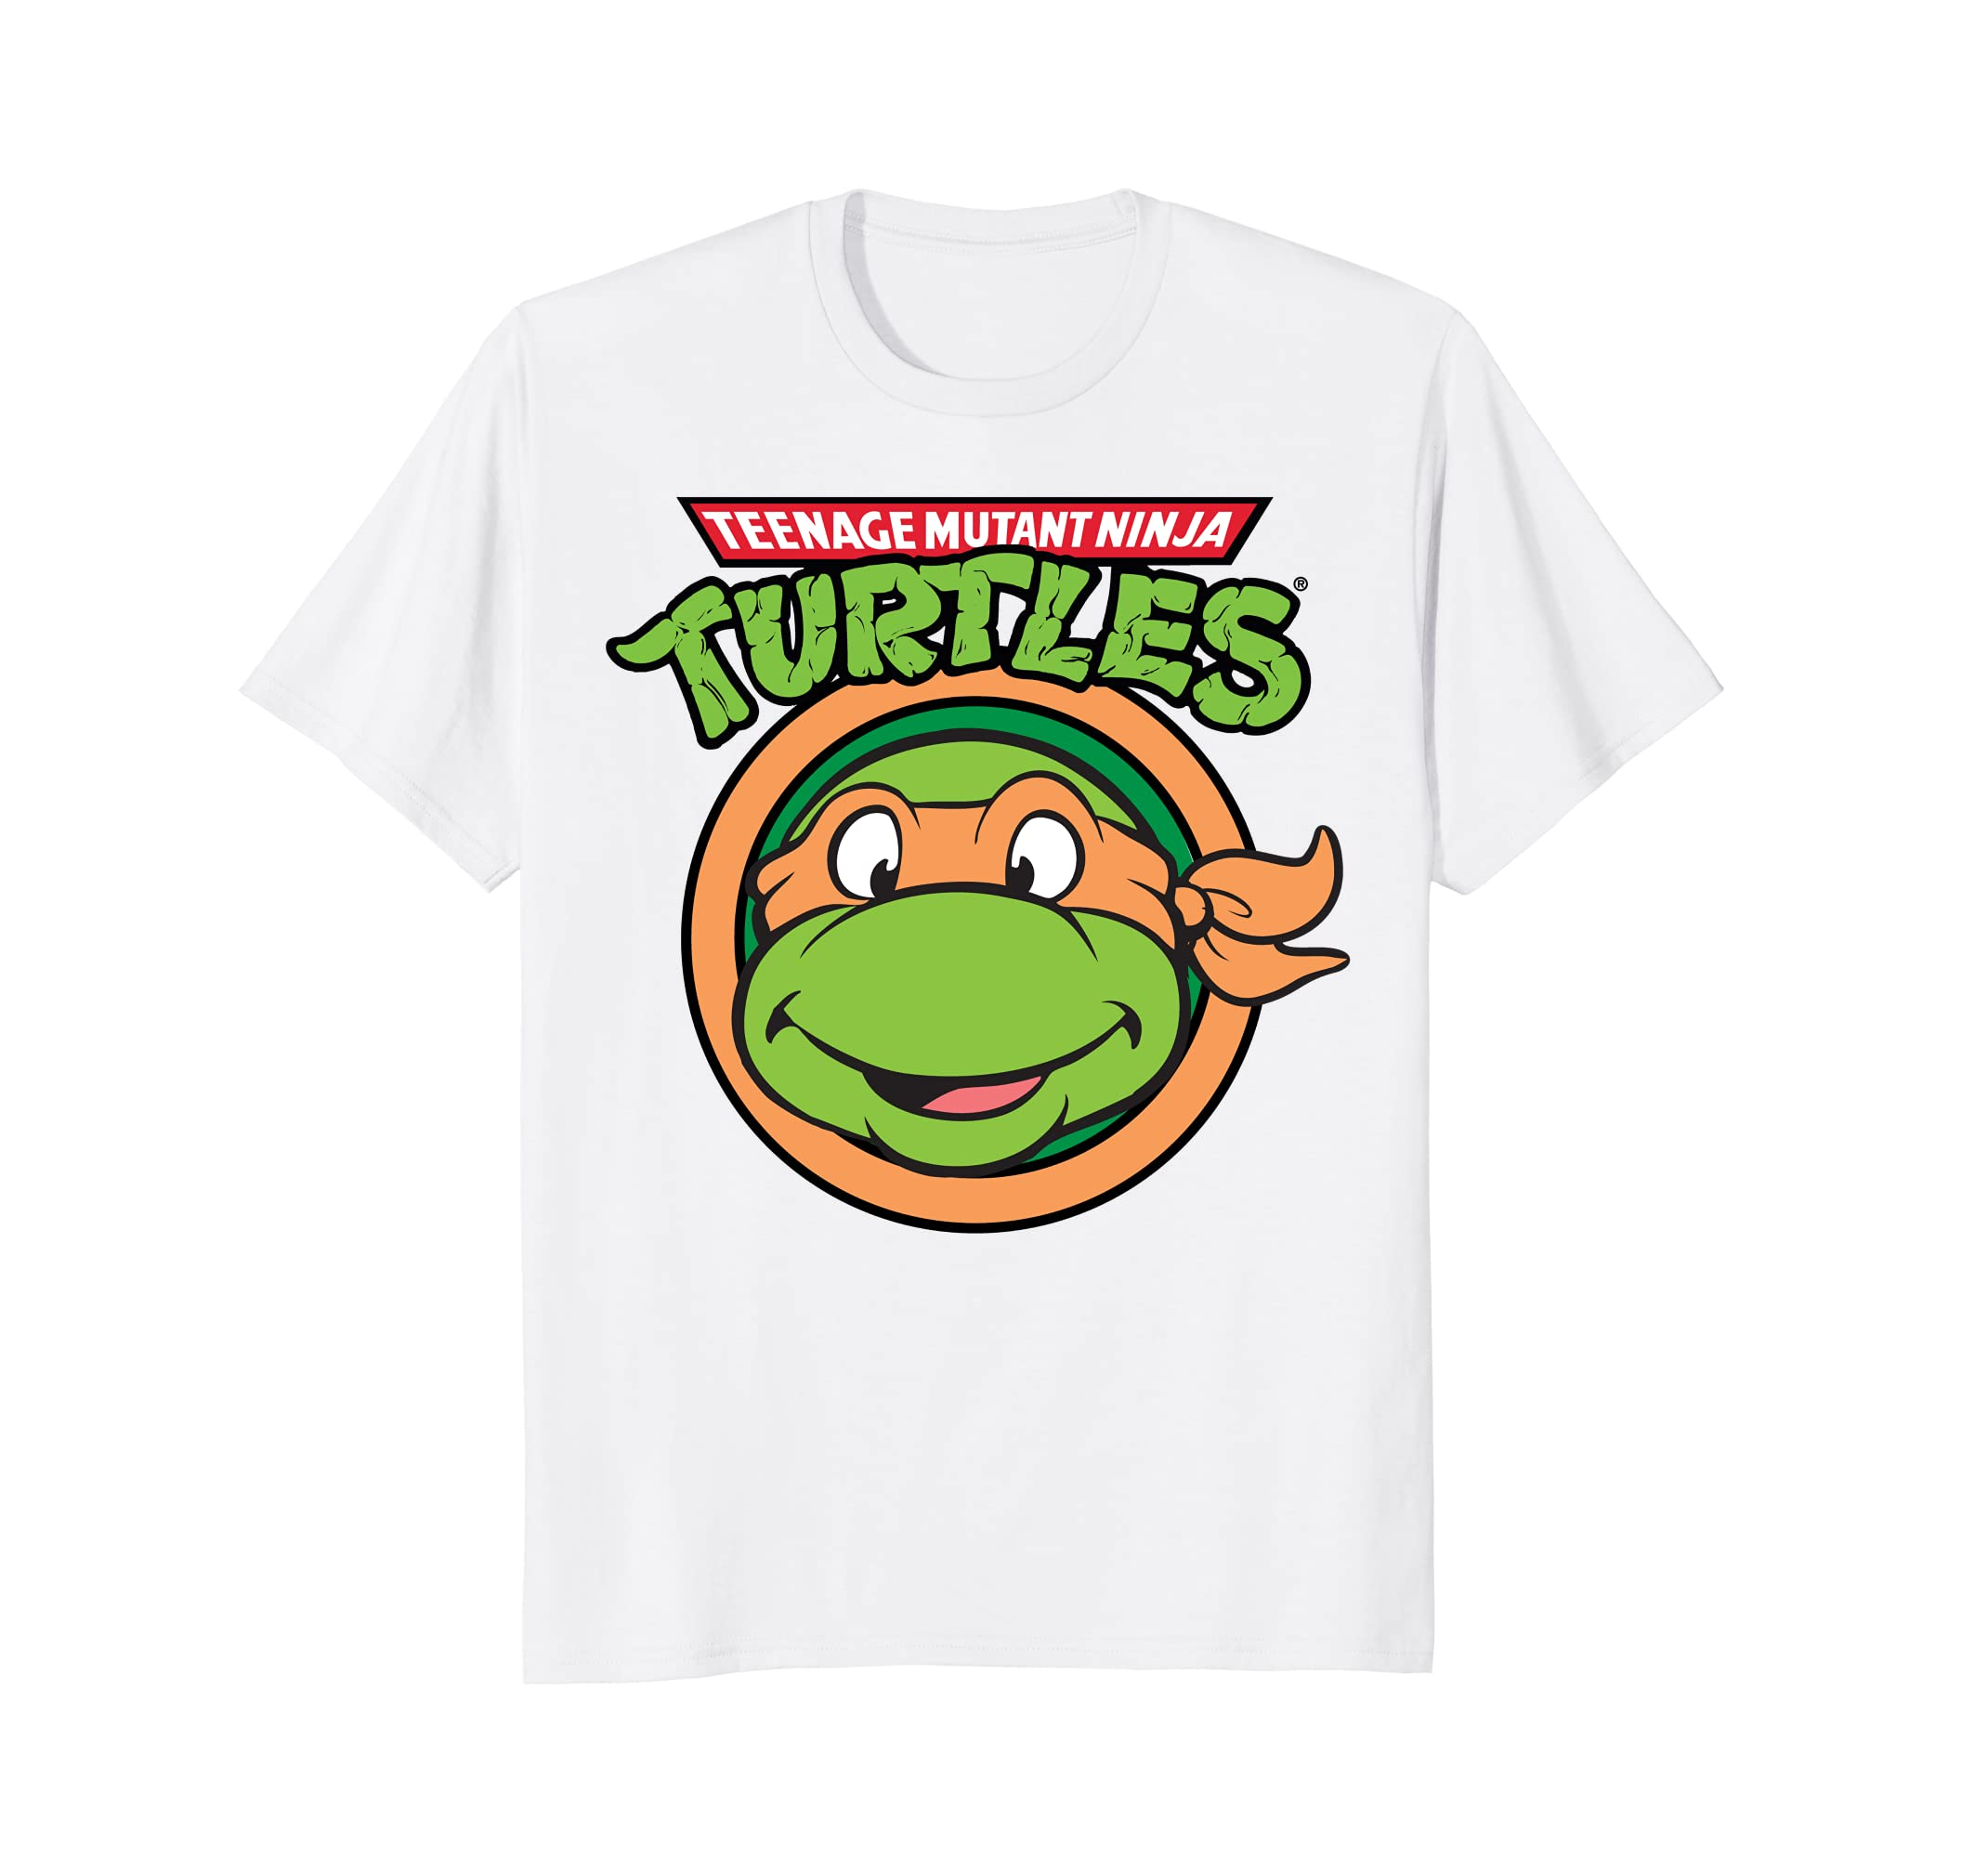 eac881aa663 Amazon.com  Teenage Mutant Ninja Turtles Smiling Michelangelo T-Shirt   Clothing